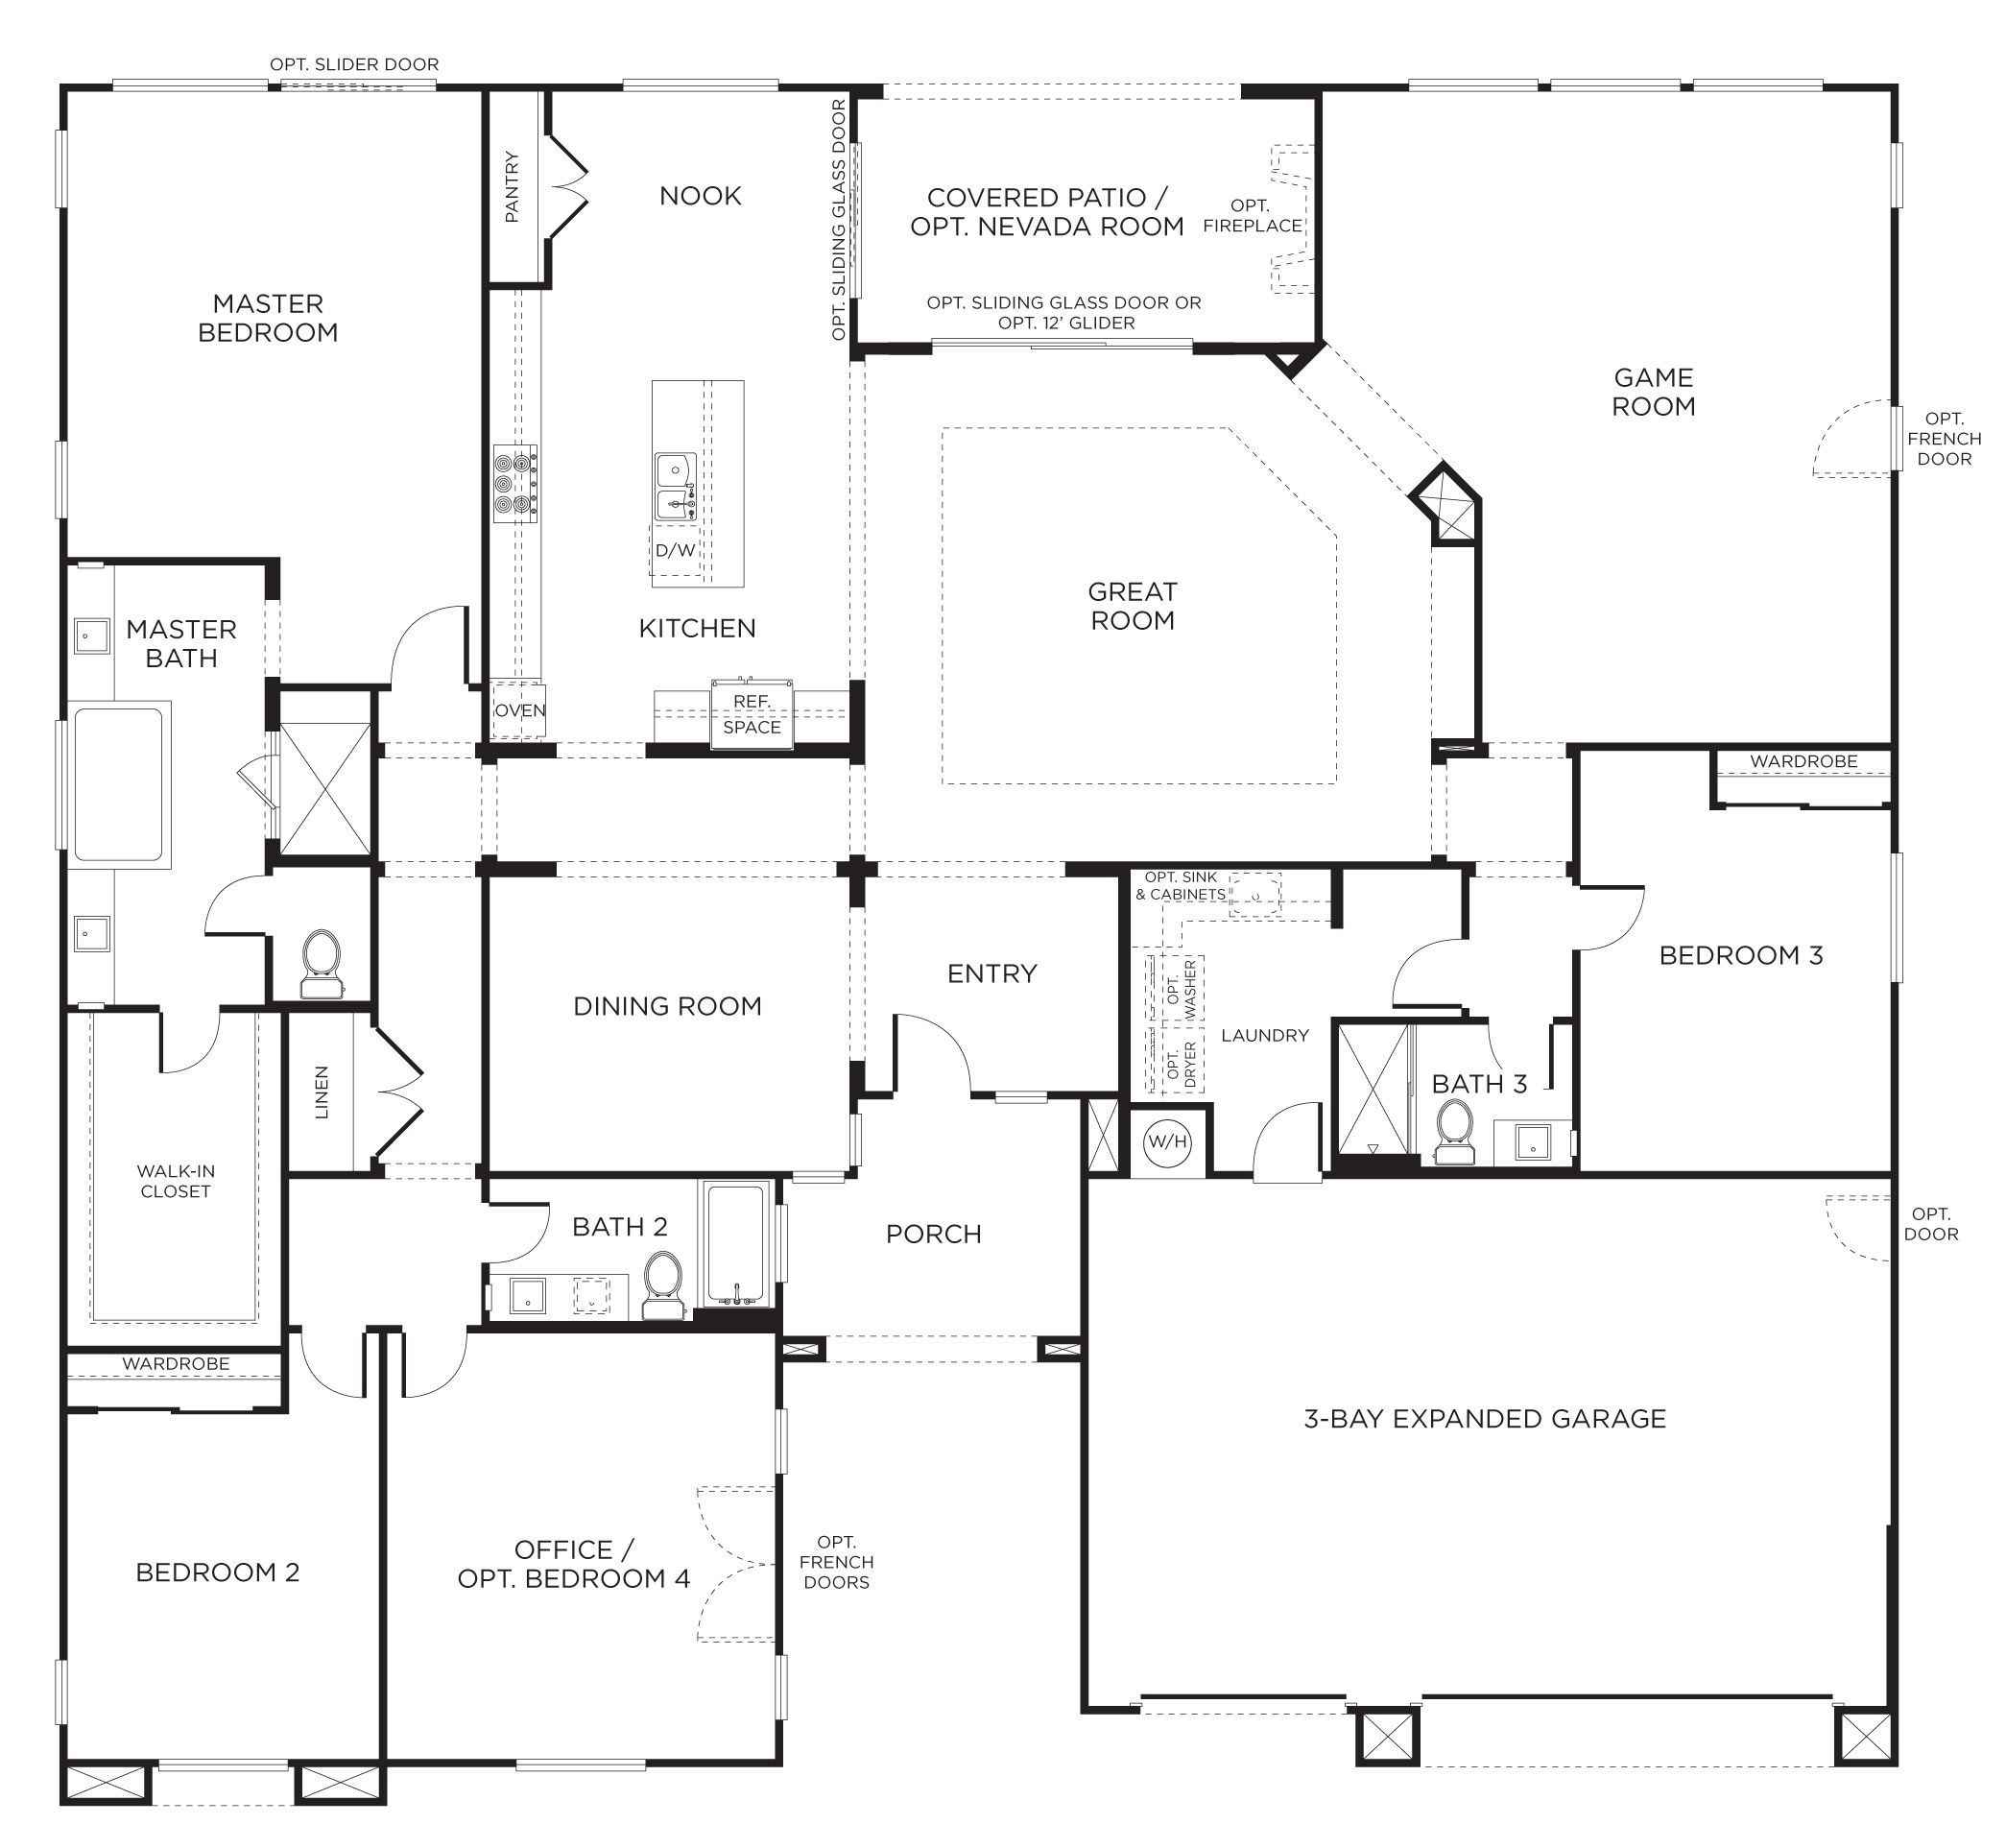 House plans 1 story covered patio